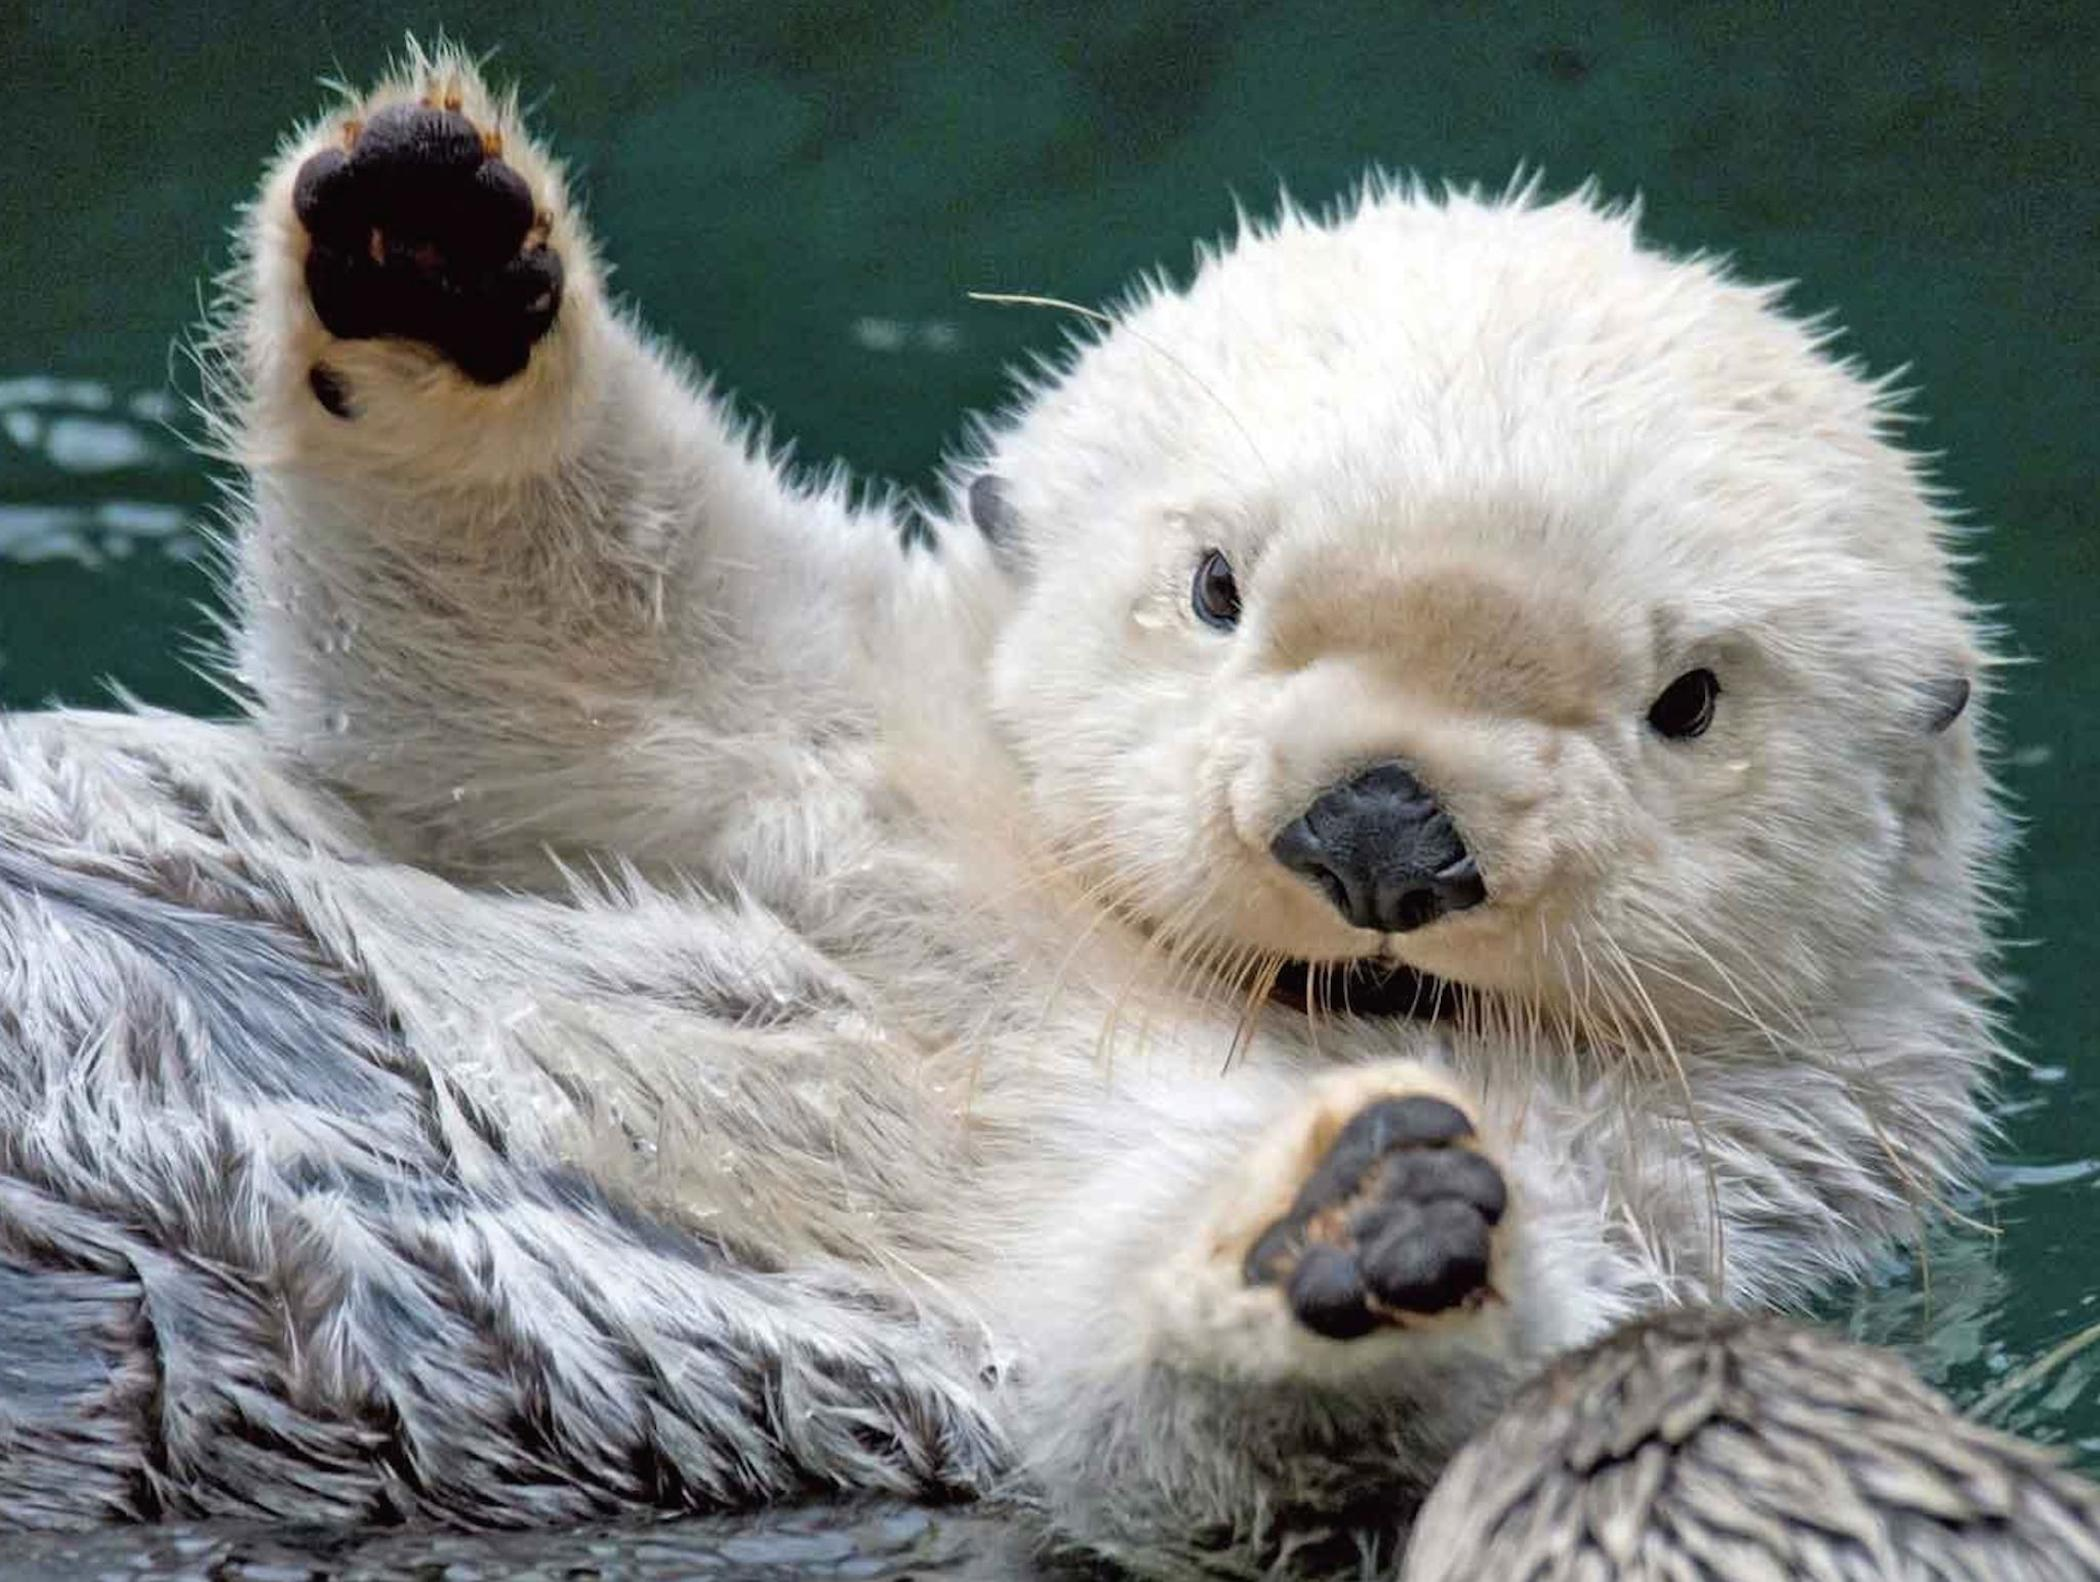 3d Wallpaper Of Dogs Cute Baby Sea Otter Wallpaper Free Baby Animal Download